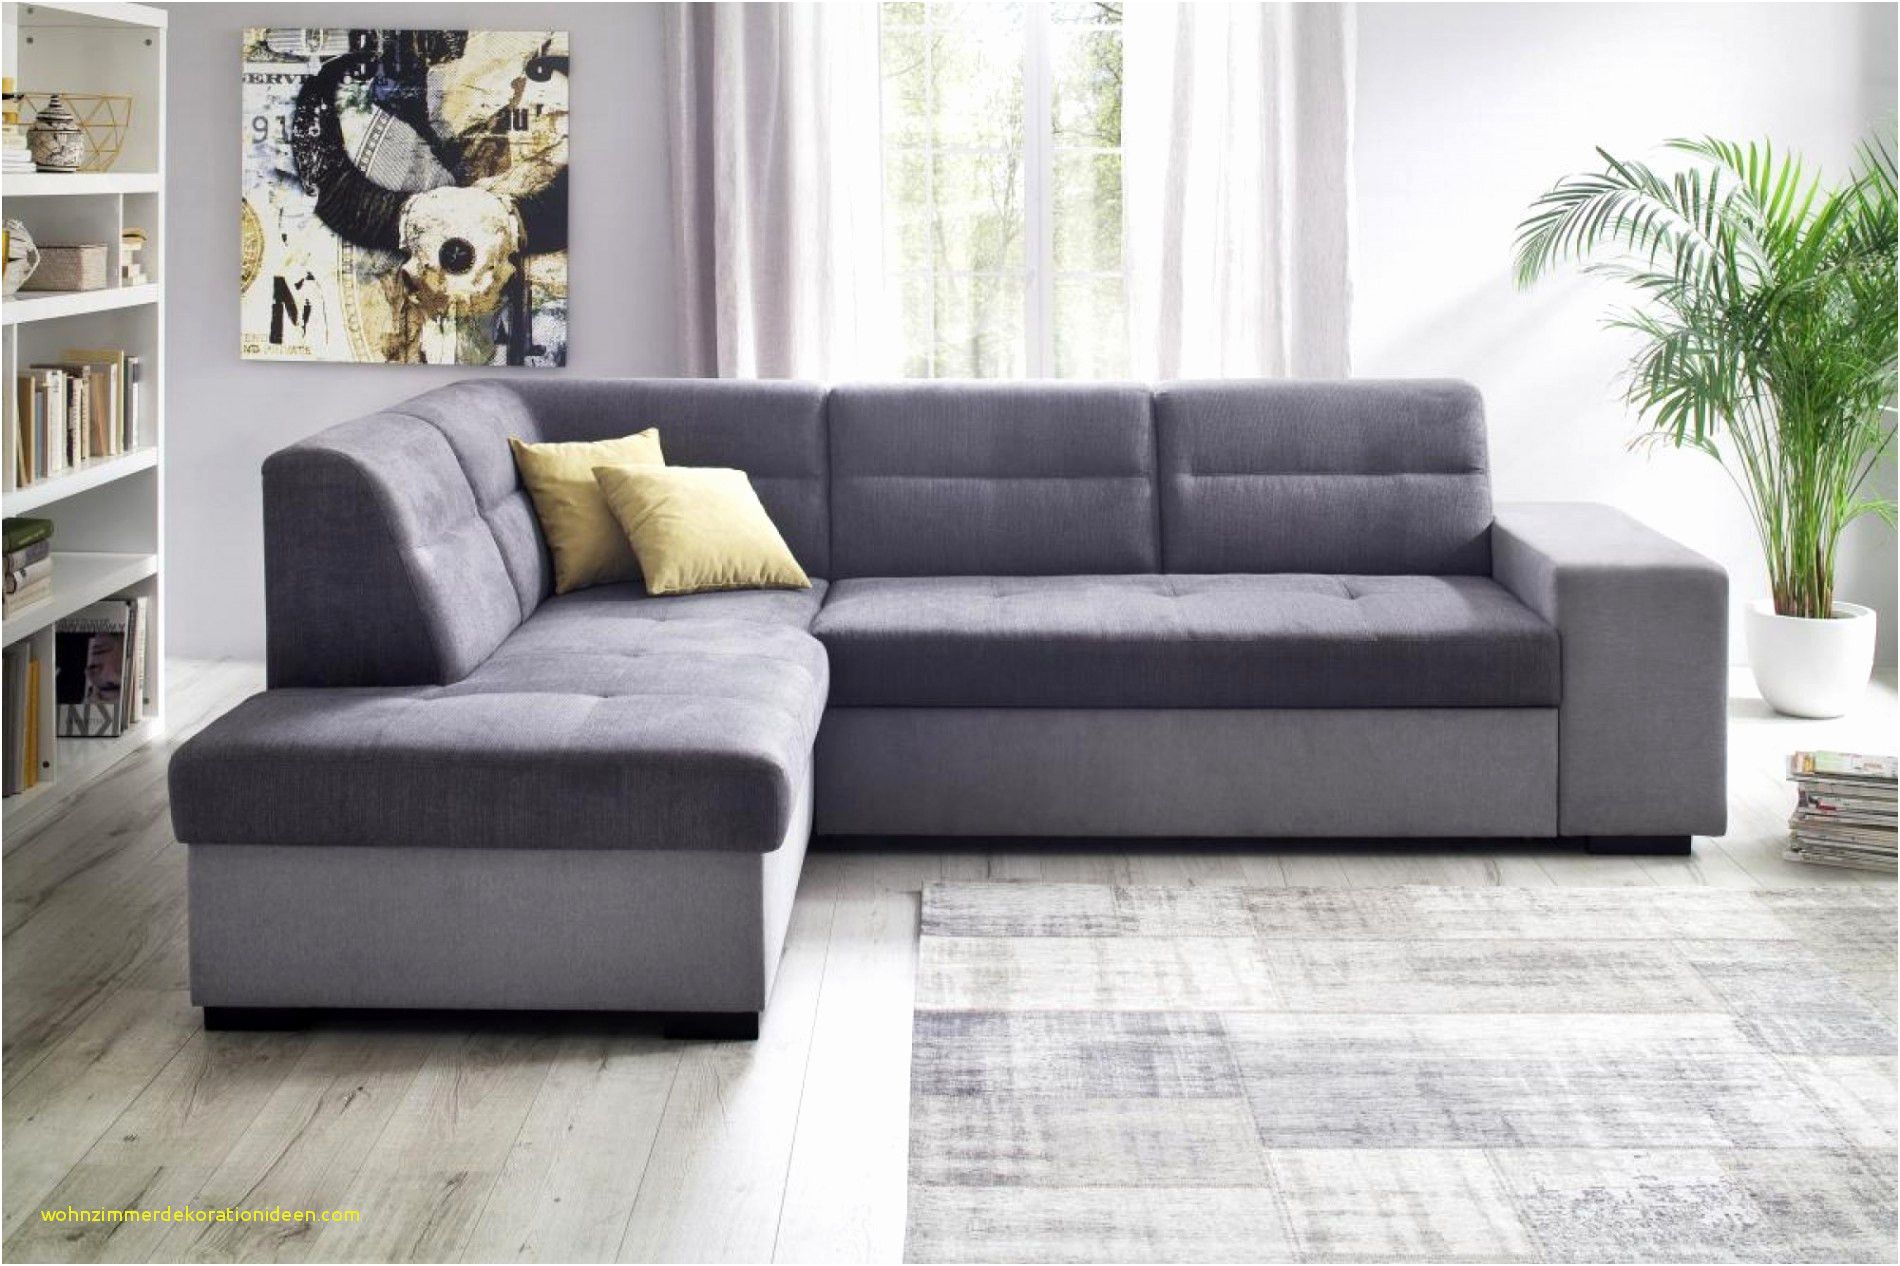 Einfach Polstergarnitur 3 2 1 Mit Relaxfunktion Blue Sofa Living Gray Sofa Living Blue Sofas Living Room